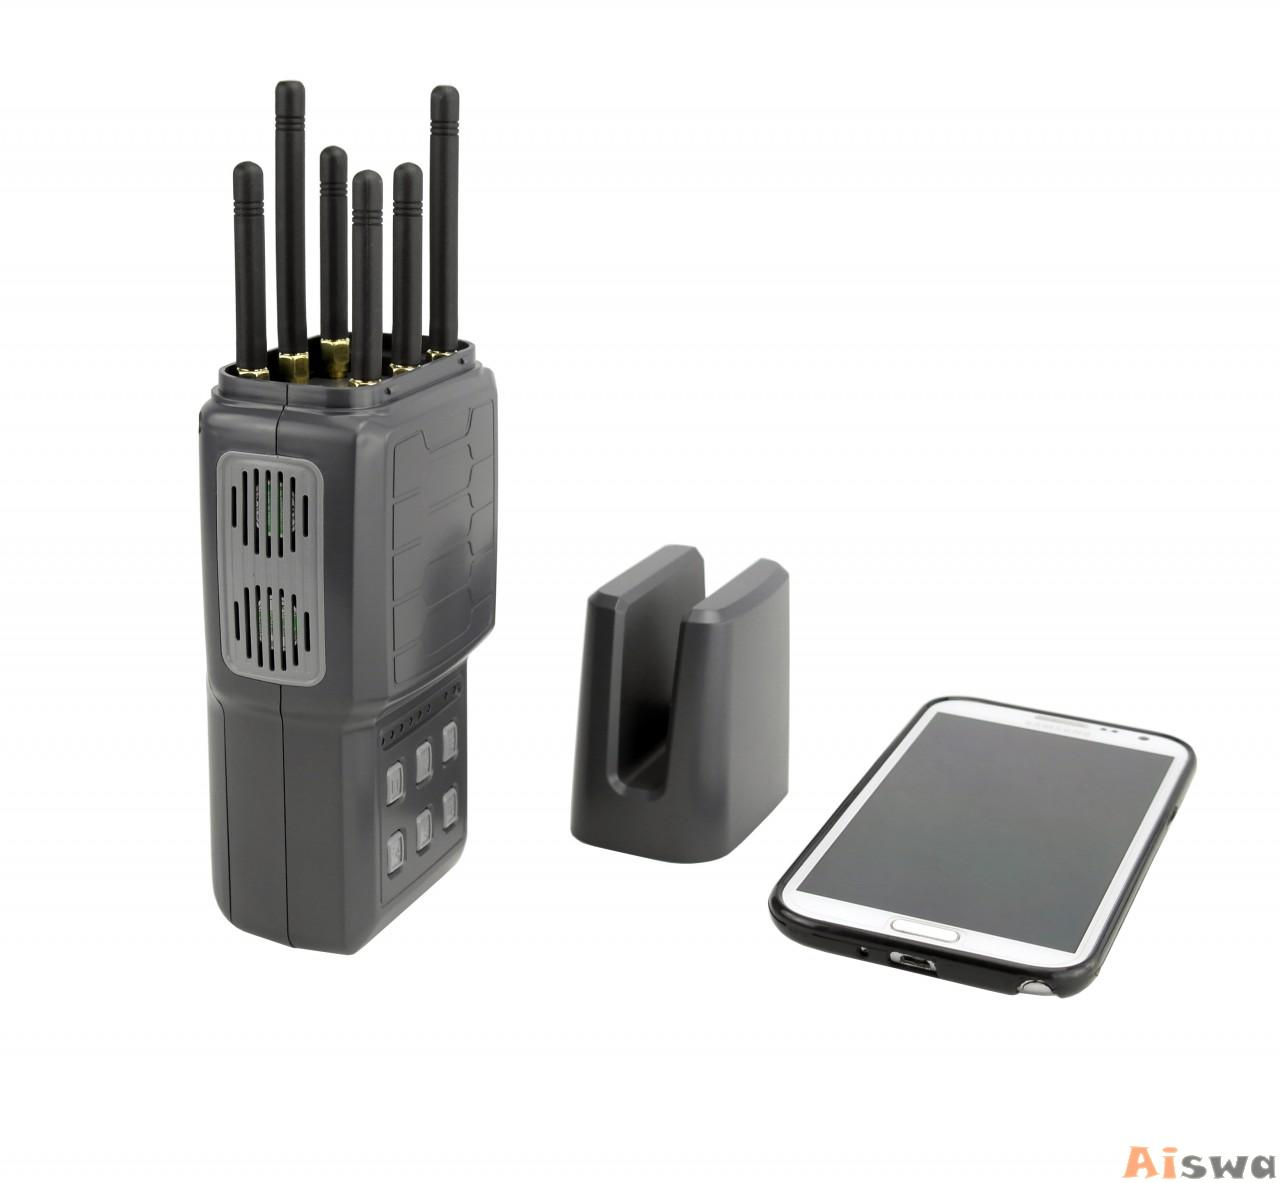 How To Make A Cell Phone Jammer Simple Fm Radio Circuit Diagram Handheld Cellphone Wifi And Gps Jamming Device With 6 Bands 4